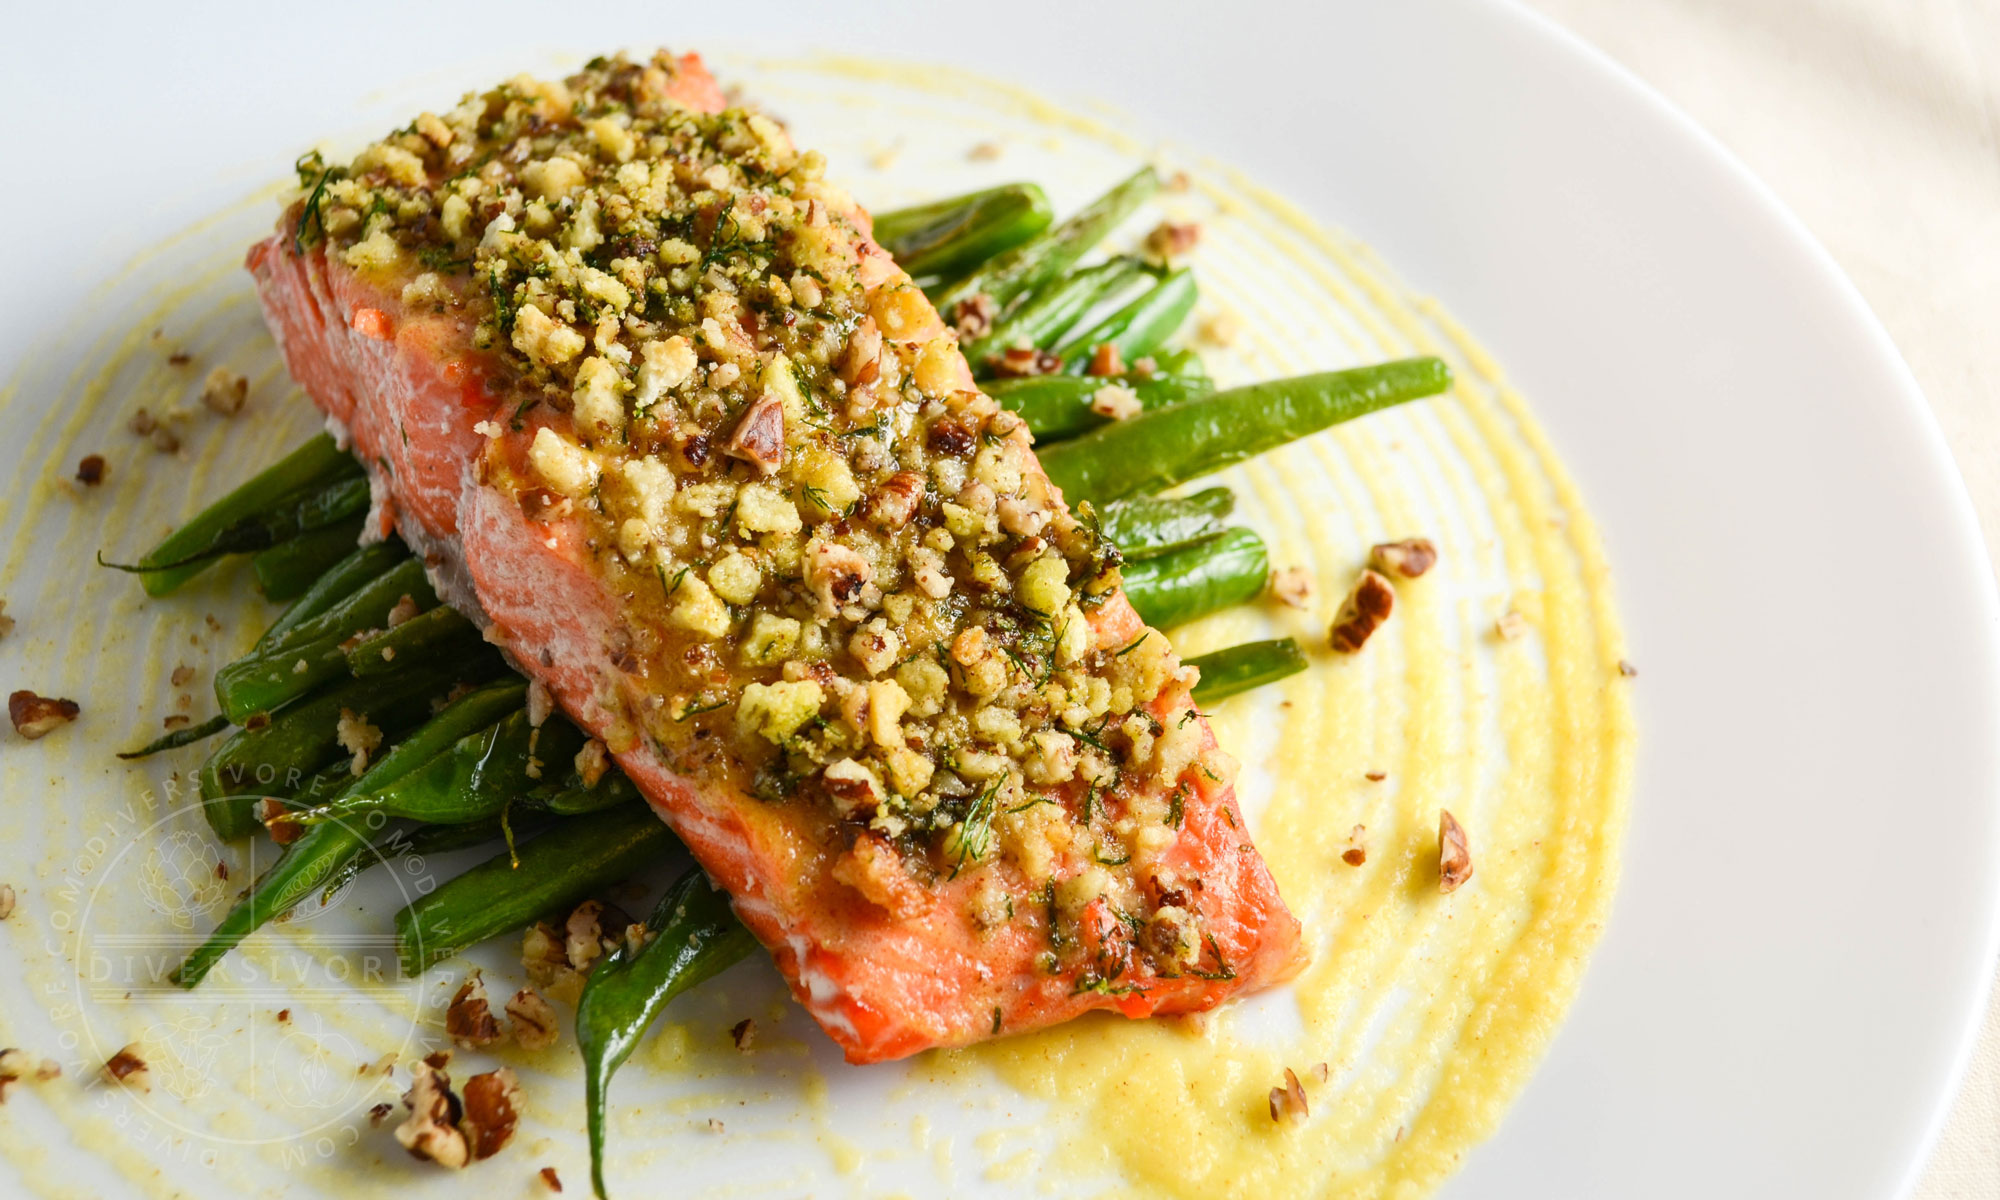 Honey and Dijon Baked Salmon with Pecans and Dill - served here with pan-fried buttered green beans - Diversivore.com